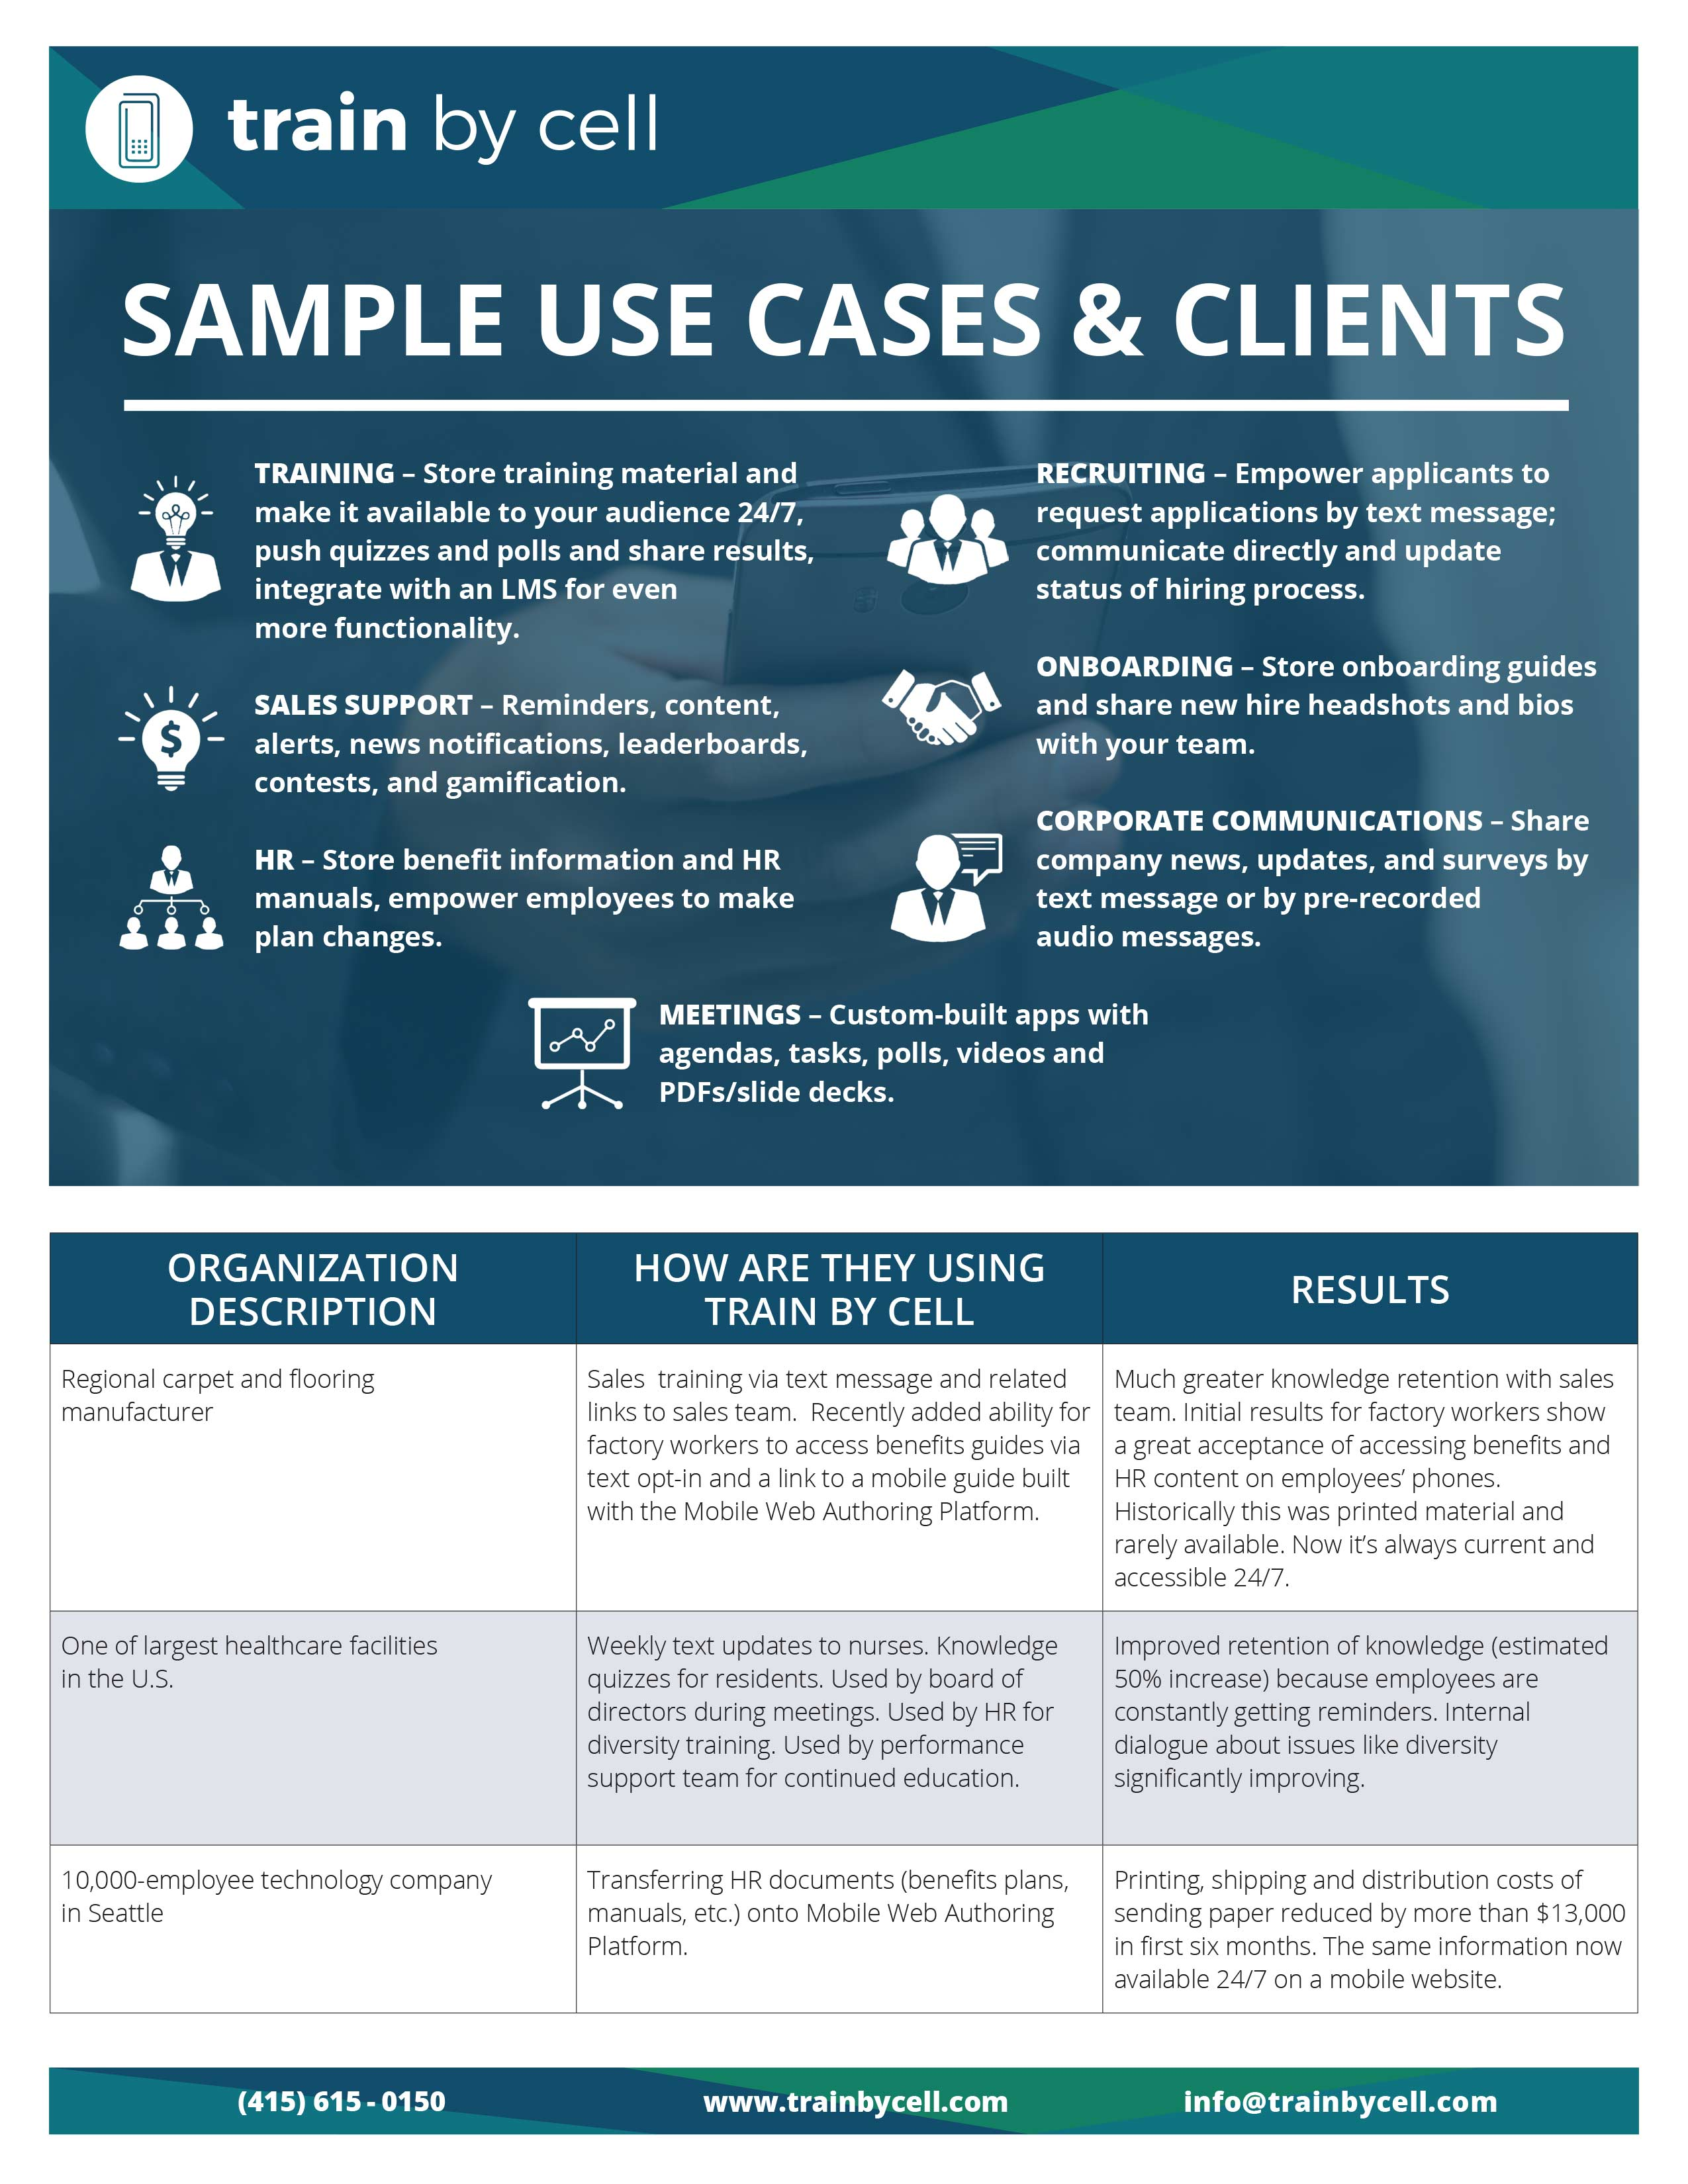 TBC Use Cases